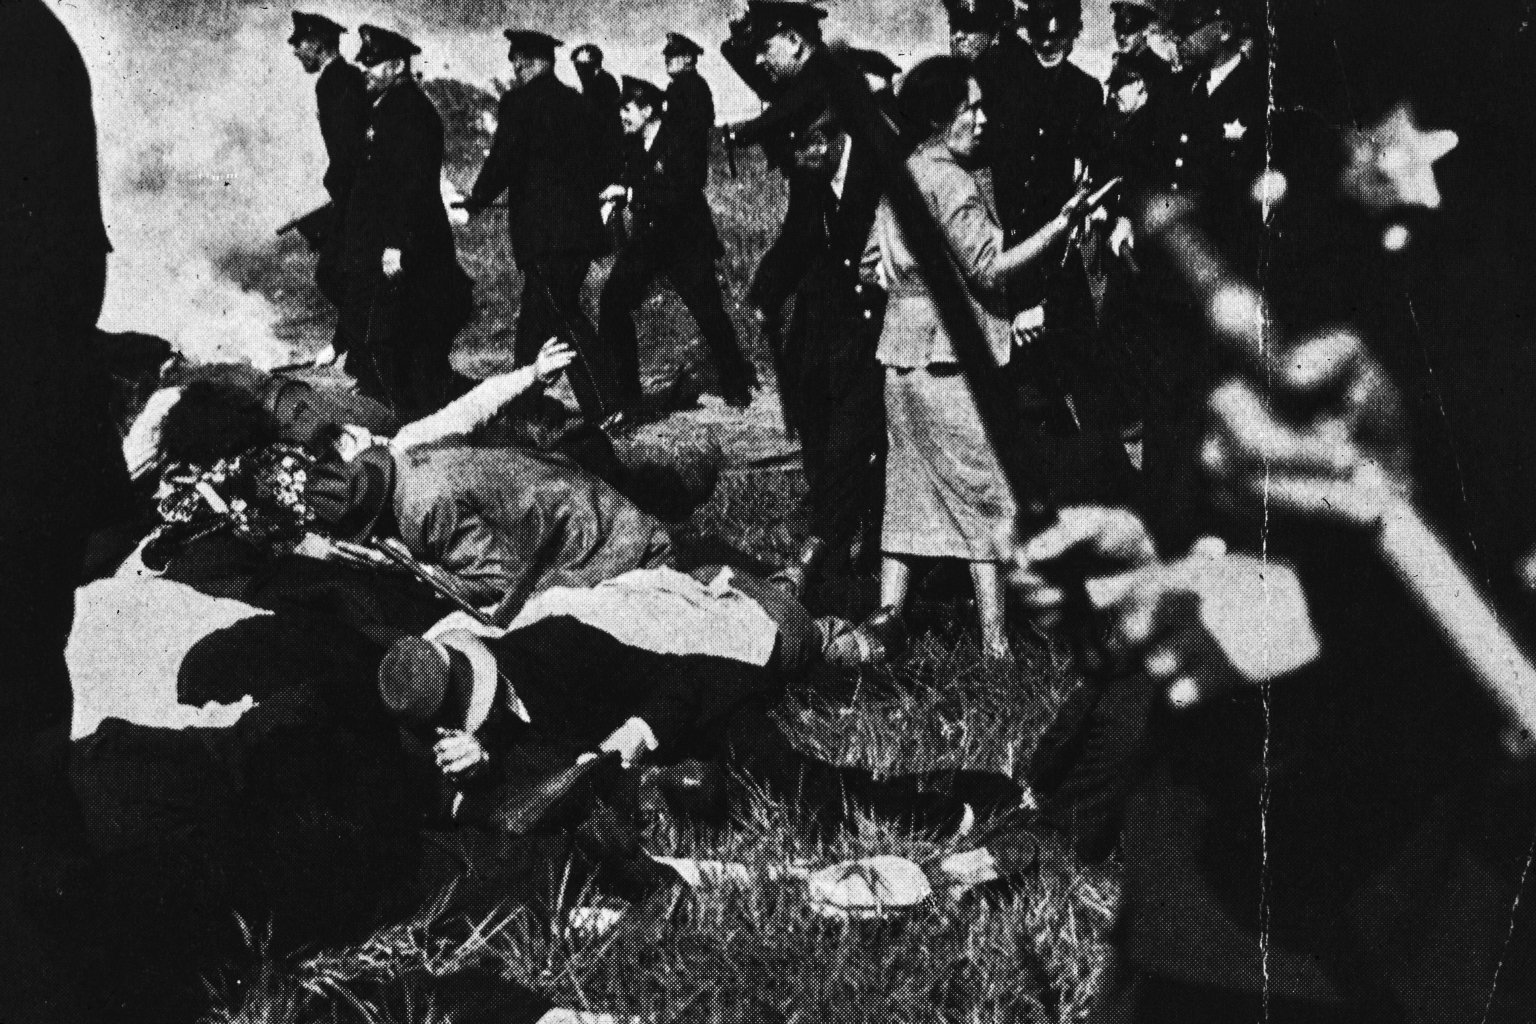 """Memorial Day Massacre Chicago, Ill. Republic Steel plant May 30, 1937"